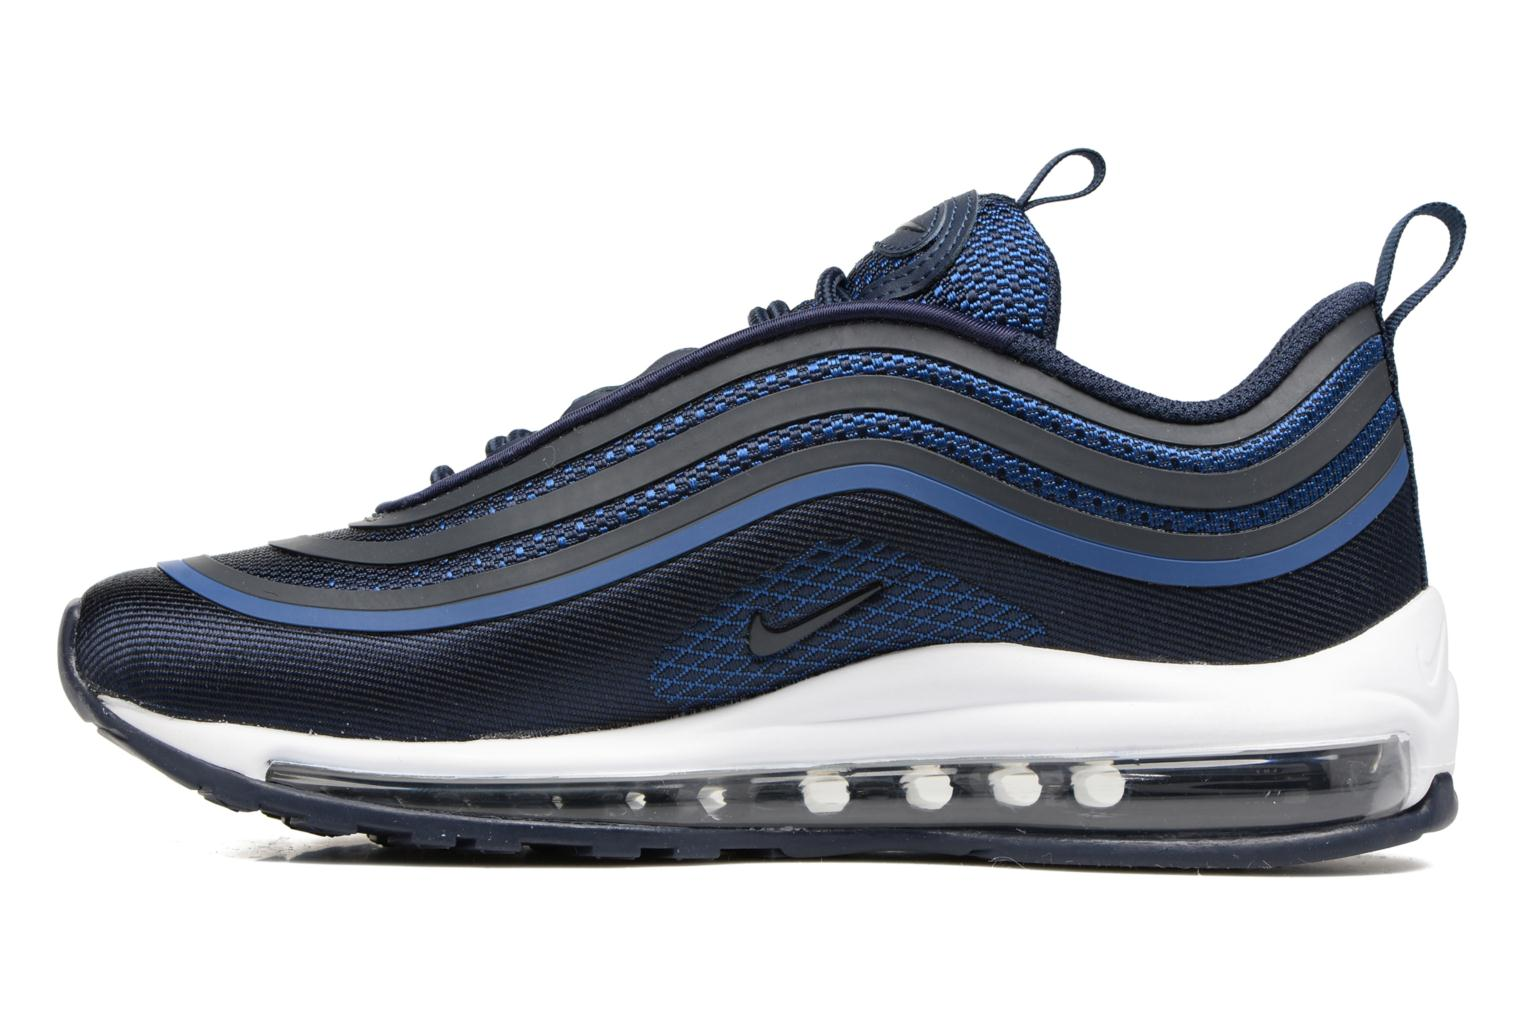 Air Max 97 Ul 17 (Gs) Gym Blue/Obsidian-Summit White